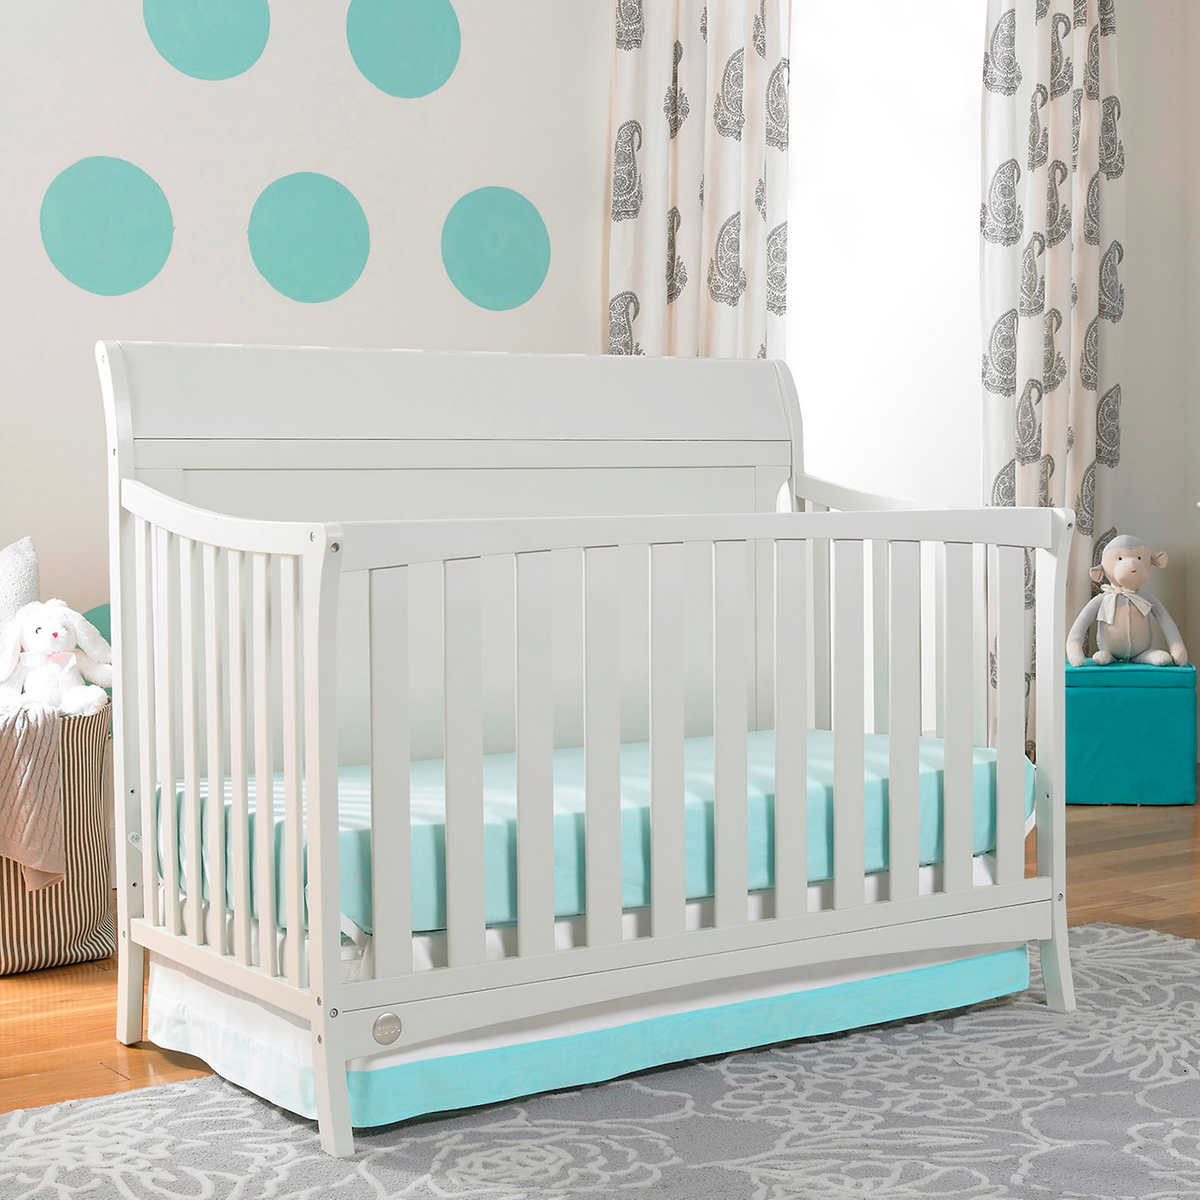 Used crib for sale edmonton - Fisher Price Georgetown Convertible Crib In Snow White